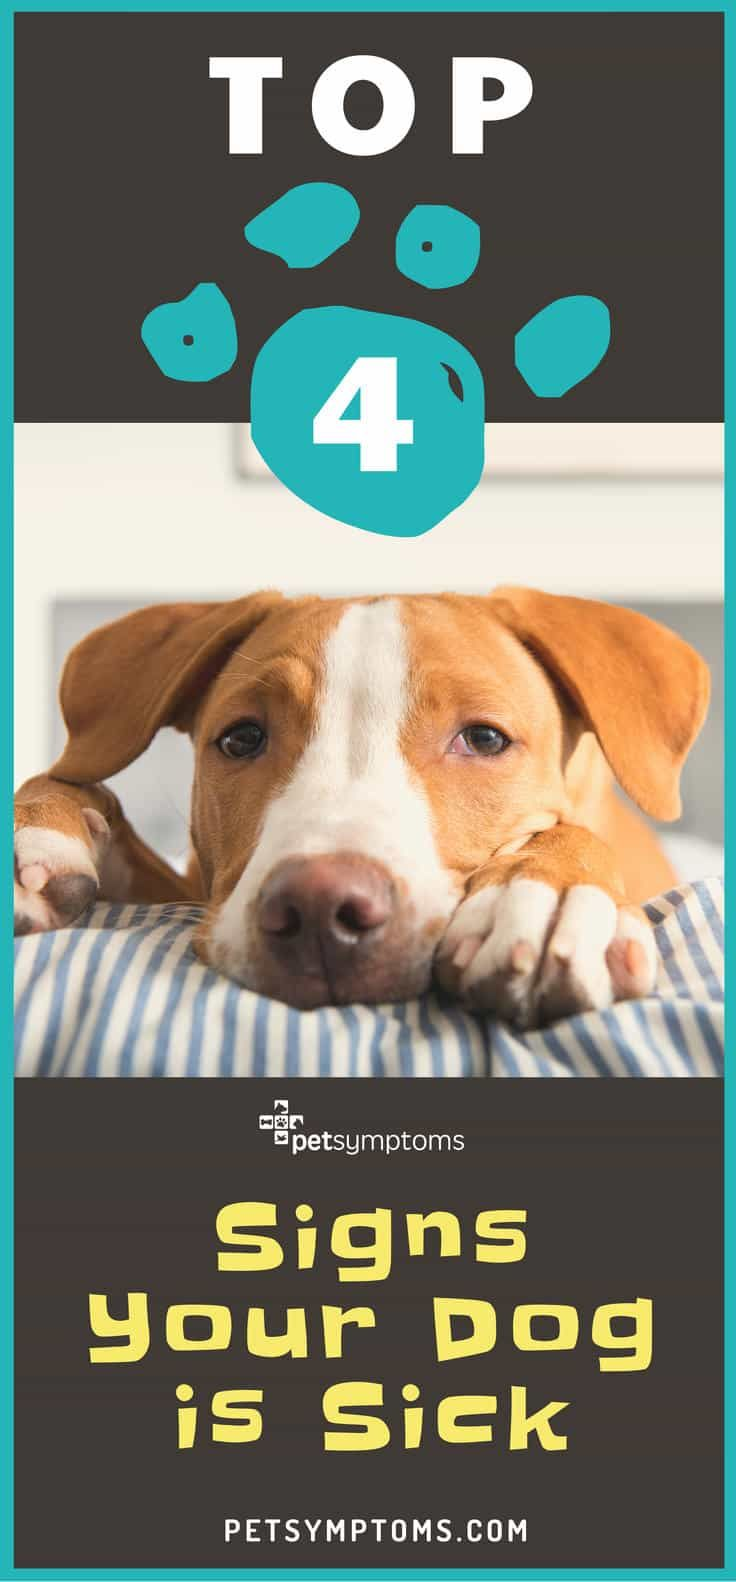 Minor pet health issues may be easily treated at home. Even some emergency situations benefit from home first aid. But when your dog shows one of these top 4 dangerous dog symptoms that could mean you have a sick dog, you need to consult with your veterinarian as soon as possible.